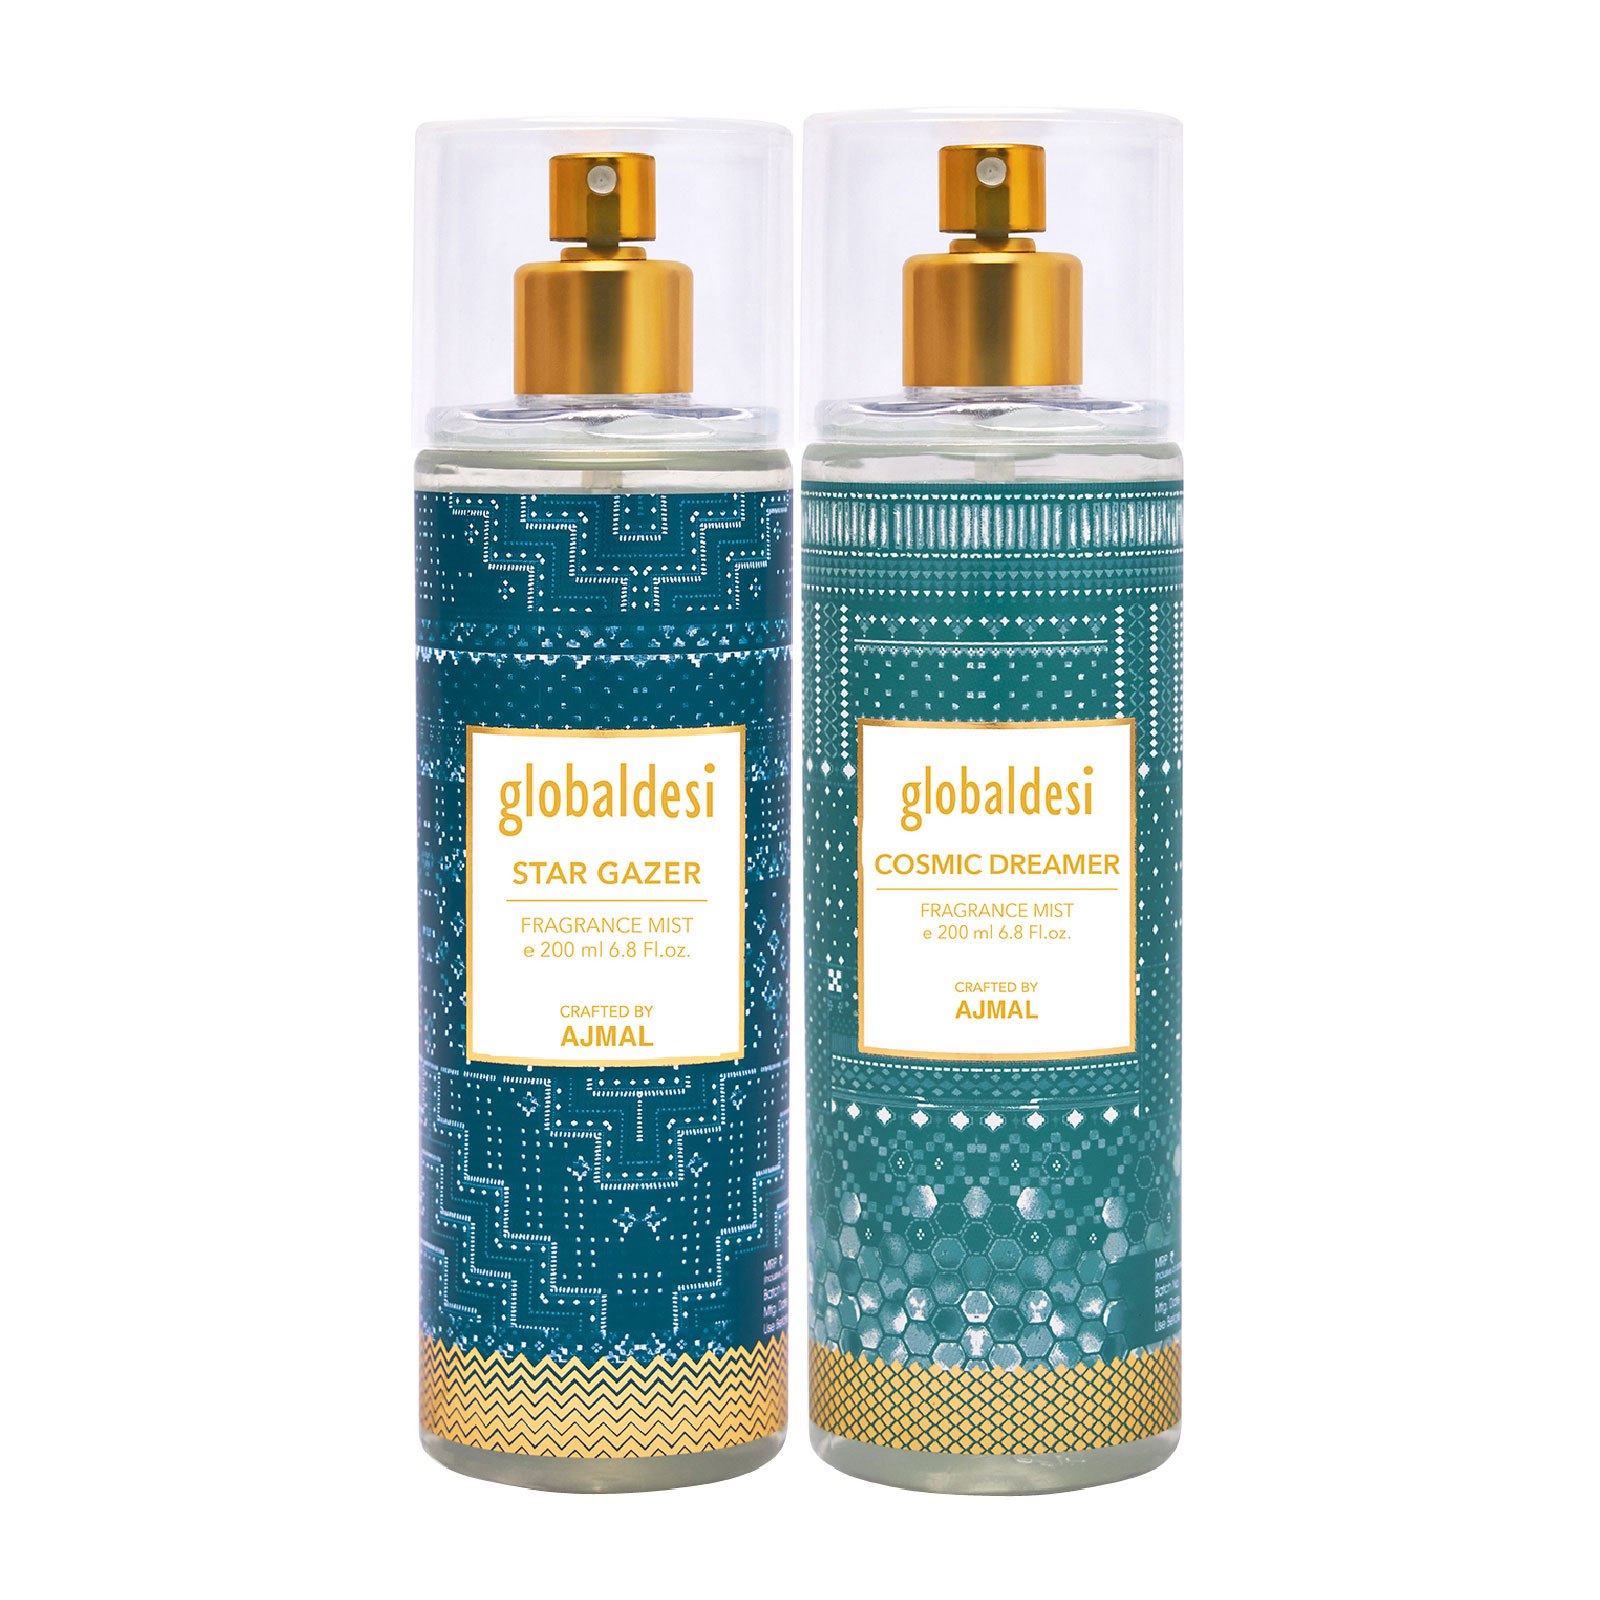 Global Desi Crafted By Ajmal | Global Desi Star Gazer & Cosmic Dreamer Pack of 2 Body Mist 200ML each for Women Crafted by Ajmal  + 2 Parfum Testers